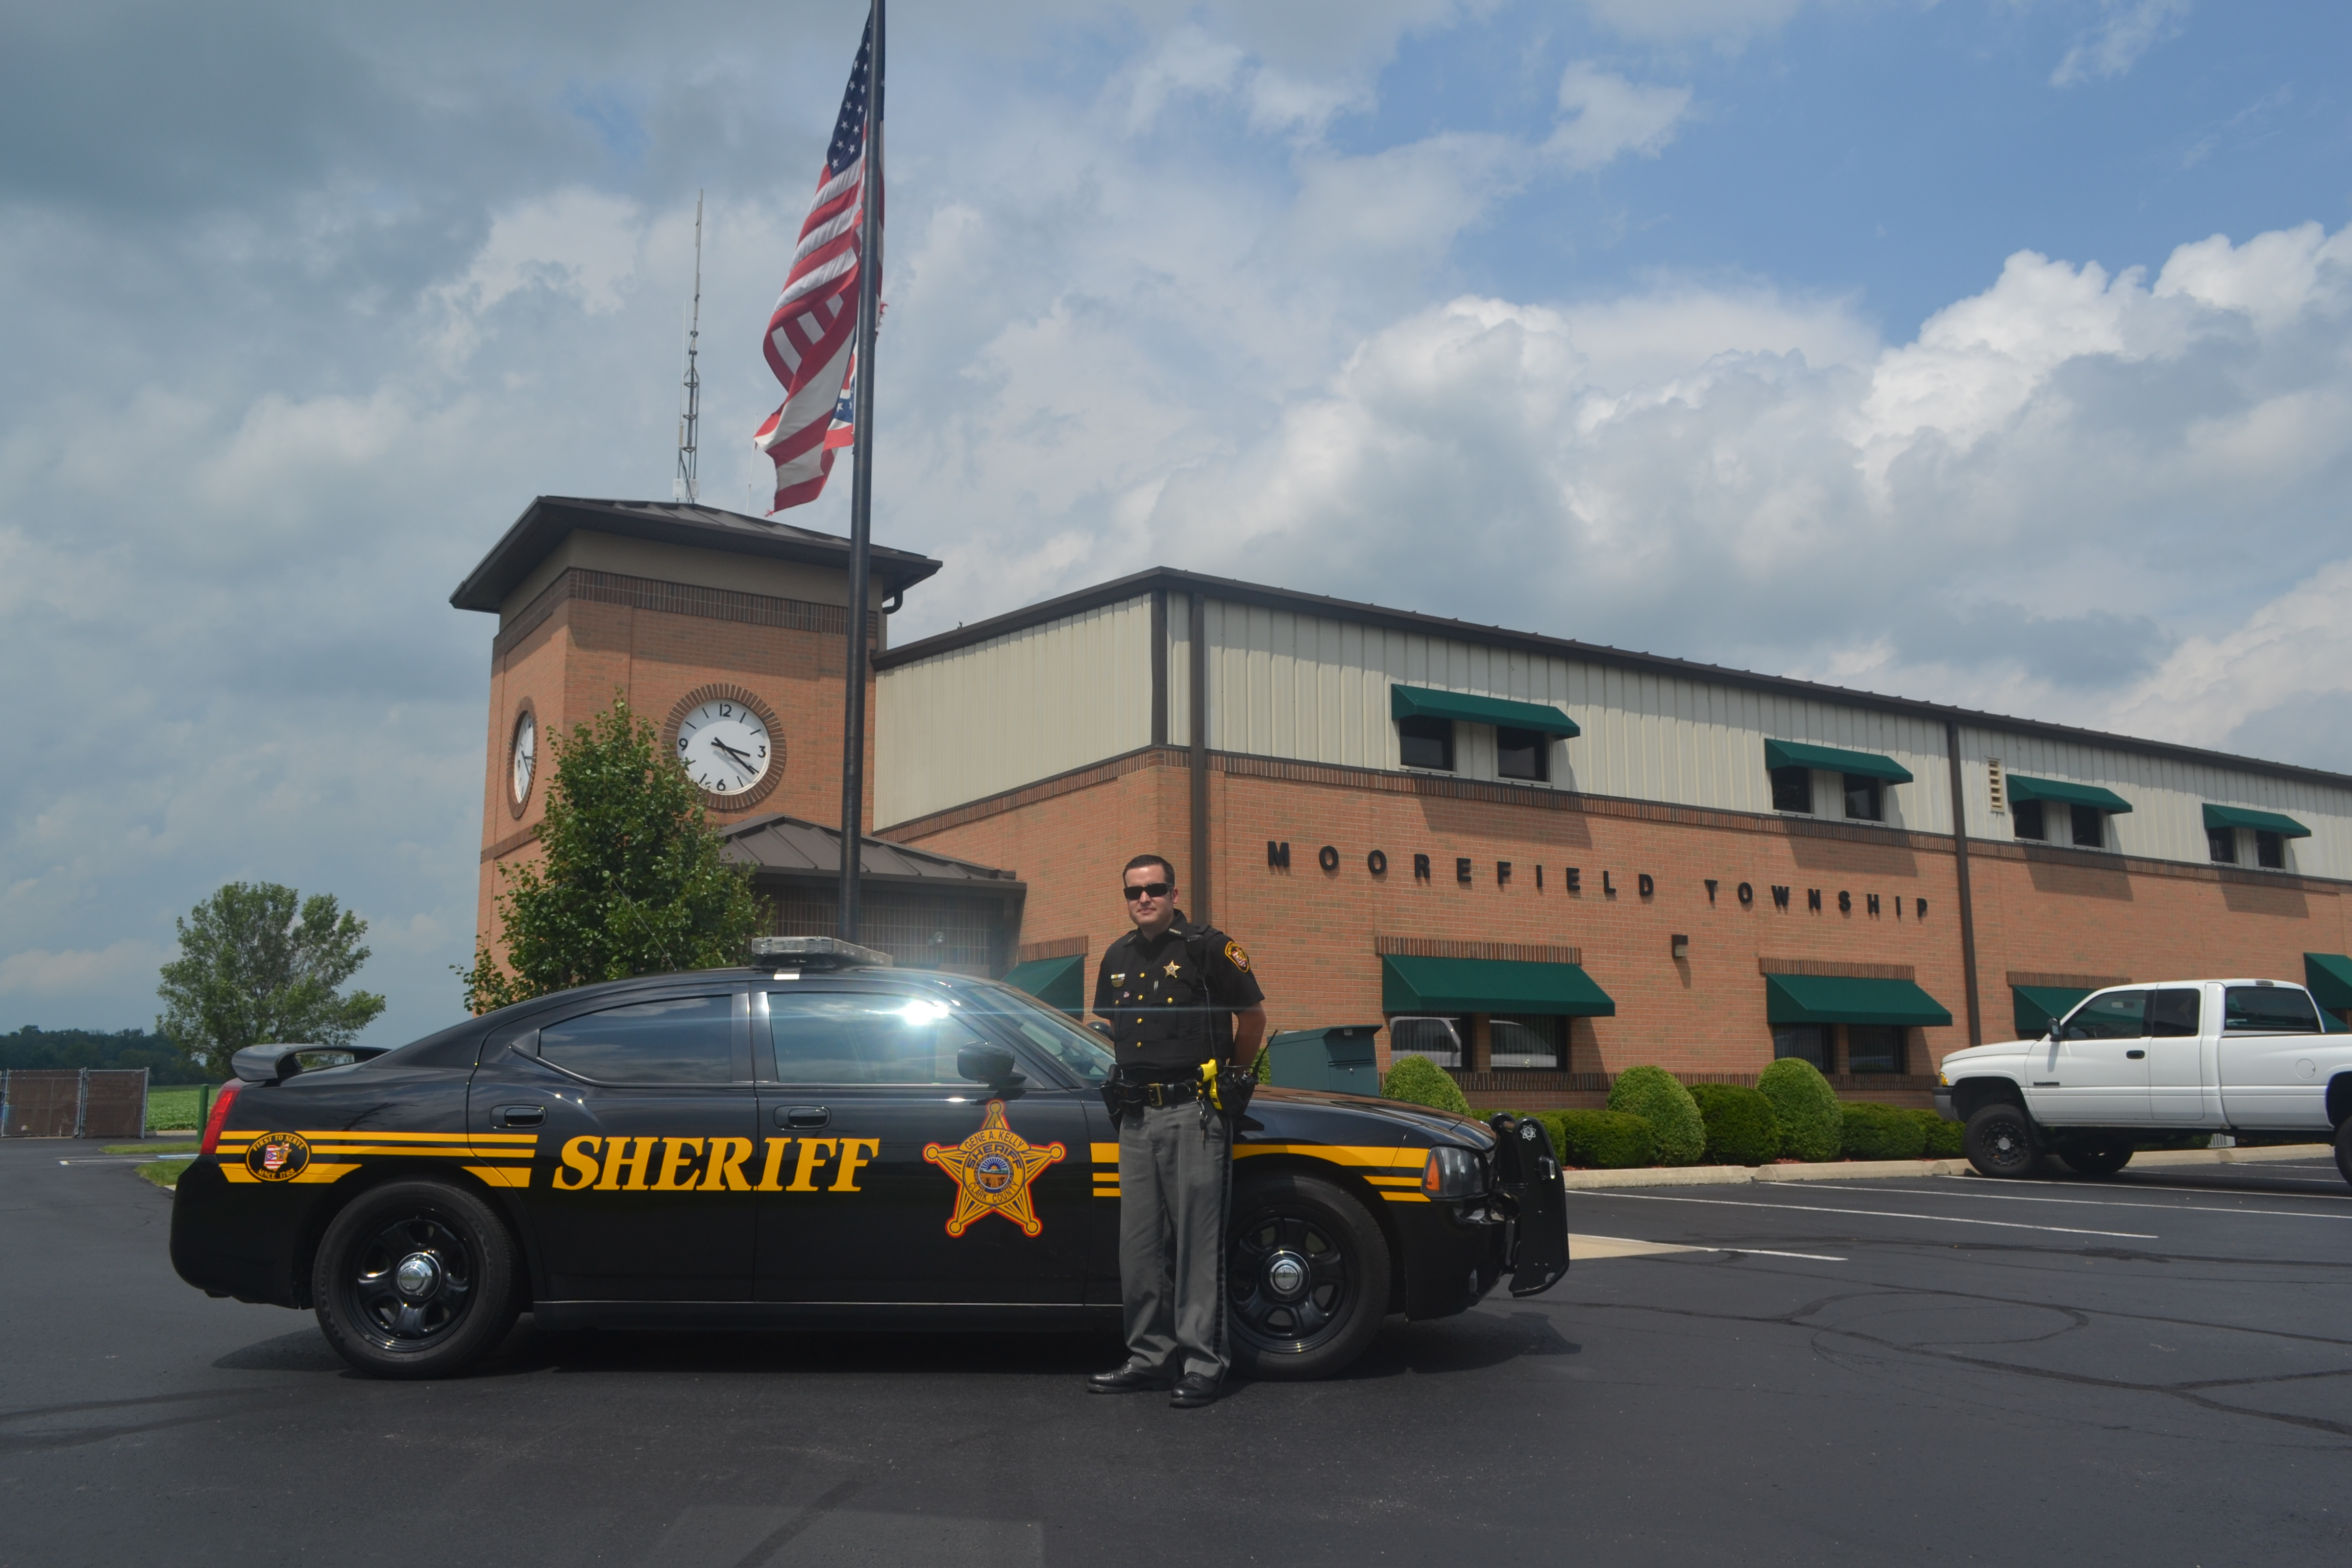 Ohio clark county new carlisle - The Clark County Sheriff S Office Has A Contract With Moorefield Township To Have Two Deputies Permanently Assigned To Patrol All Of Moorefield Township